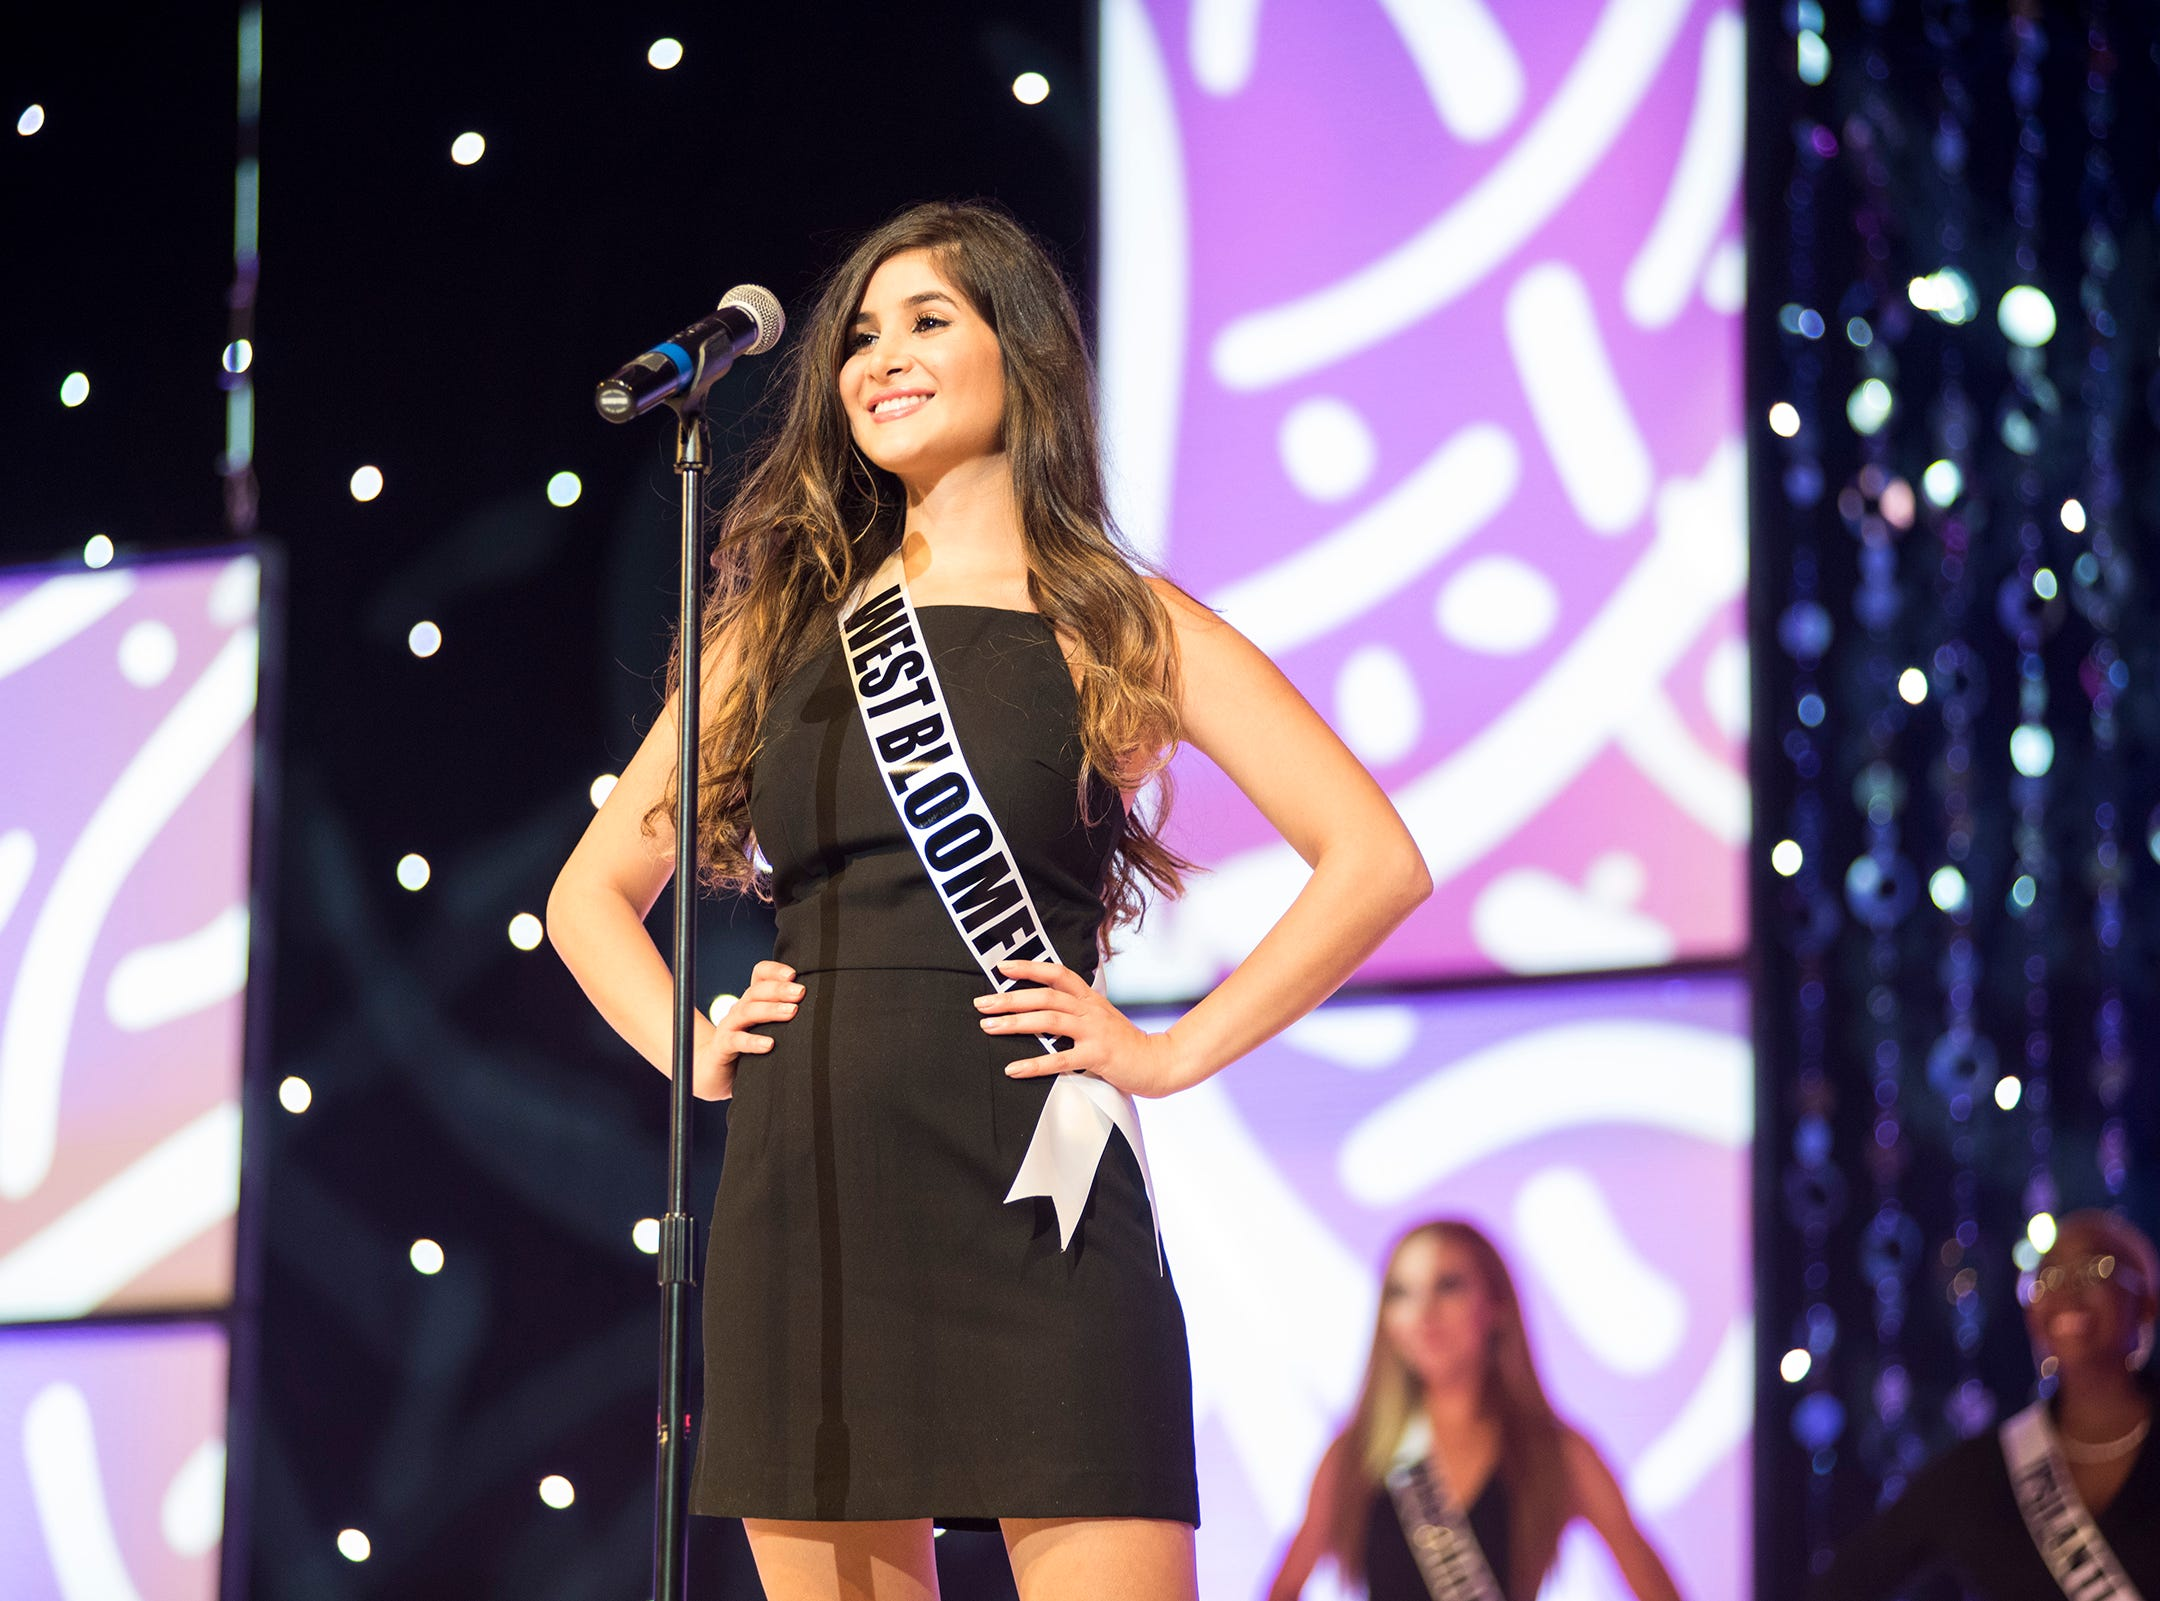 Miss West Bloomfield Sophia Cannella introduces herself Saturday, Sept. 22, 2018 at the start of the Miss Michigan USA competition at McMorran Theater.